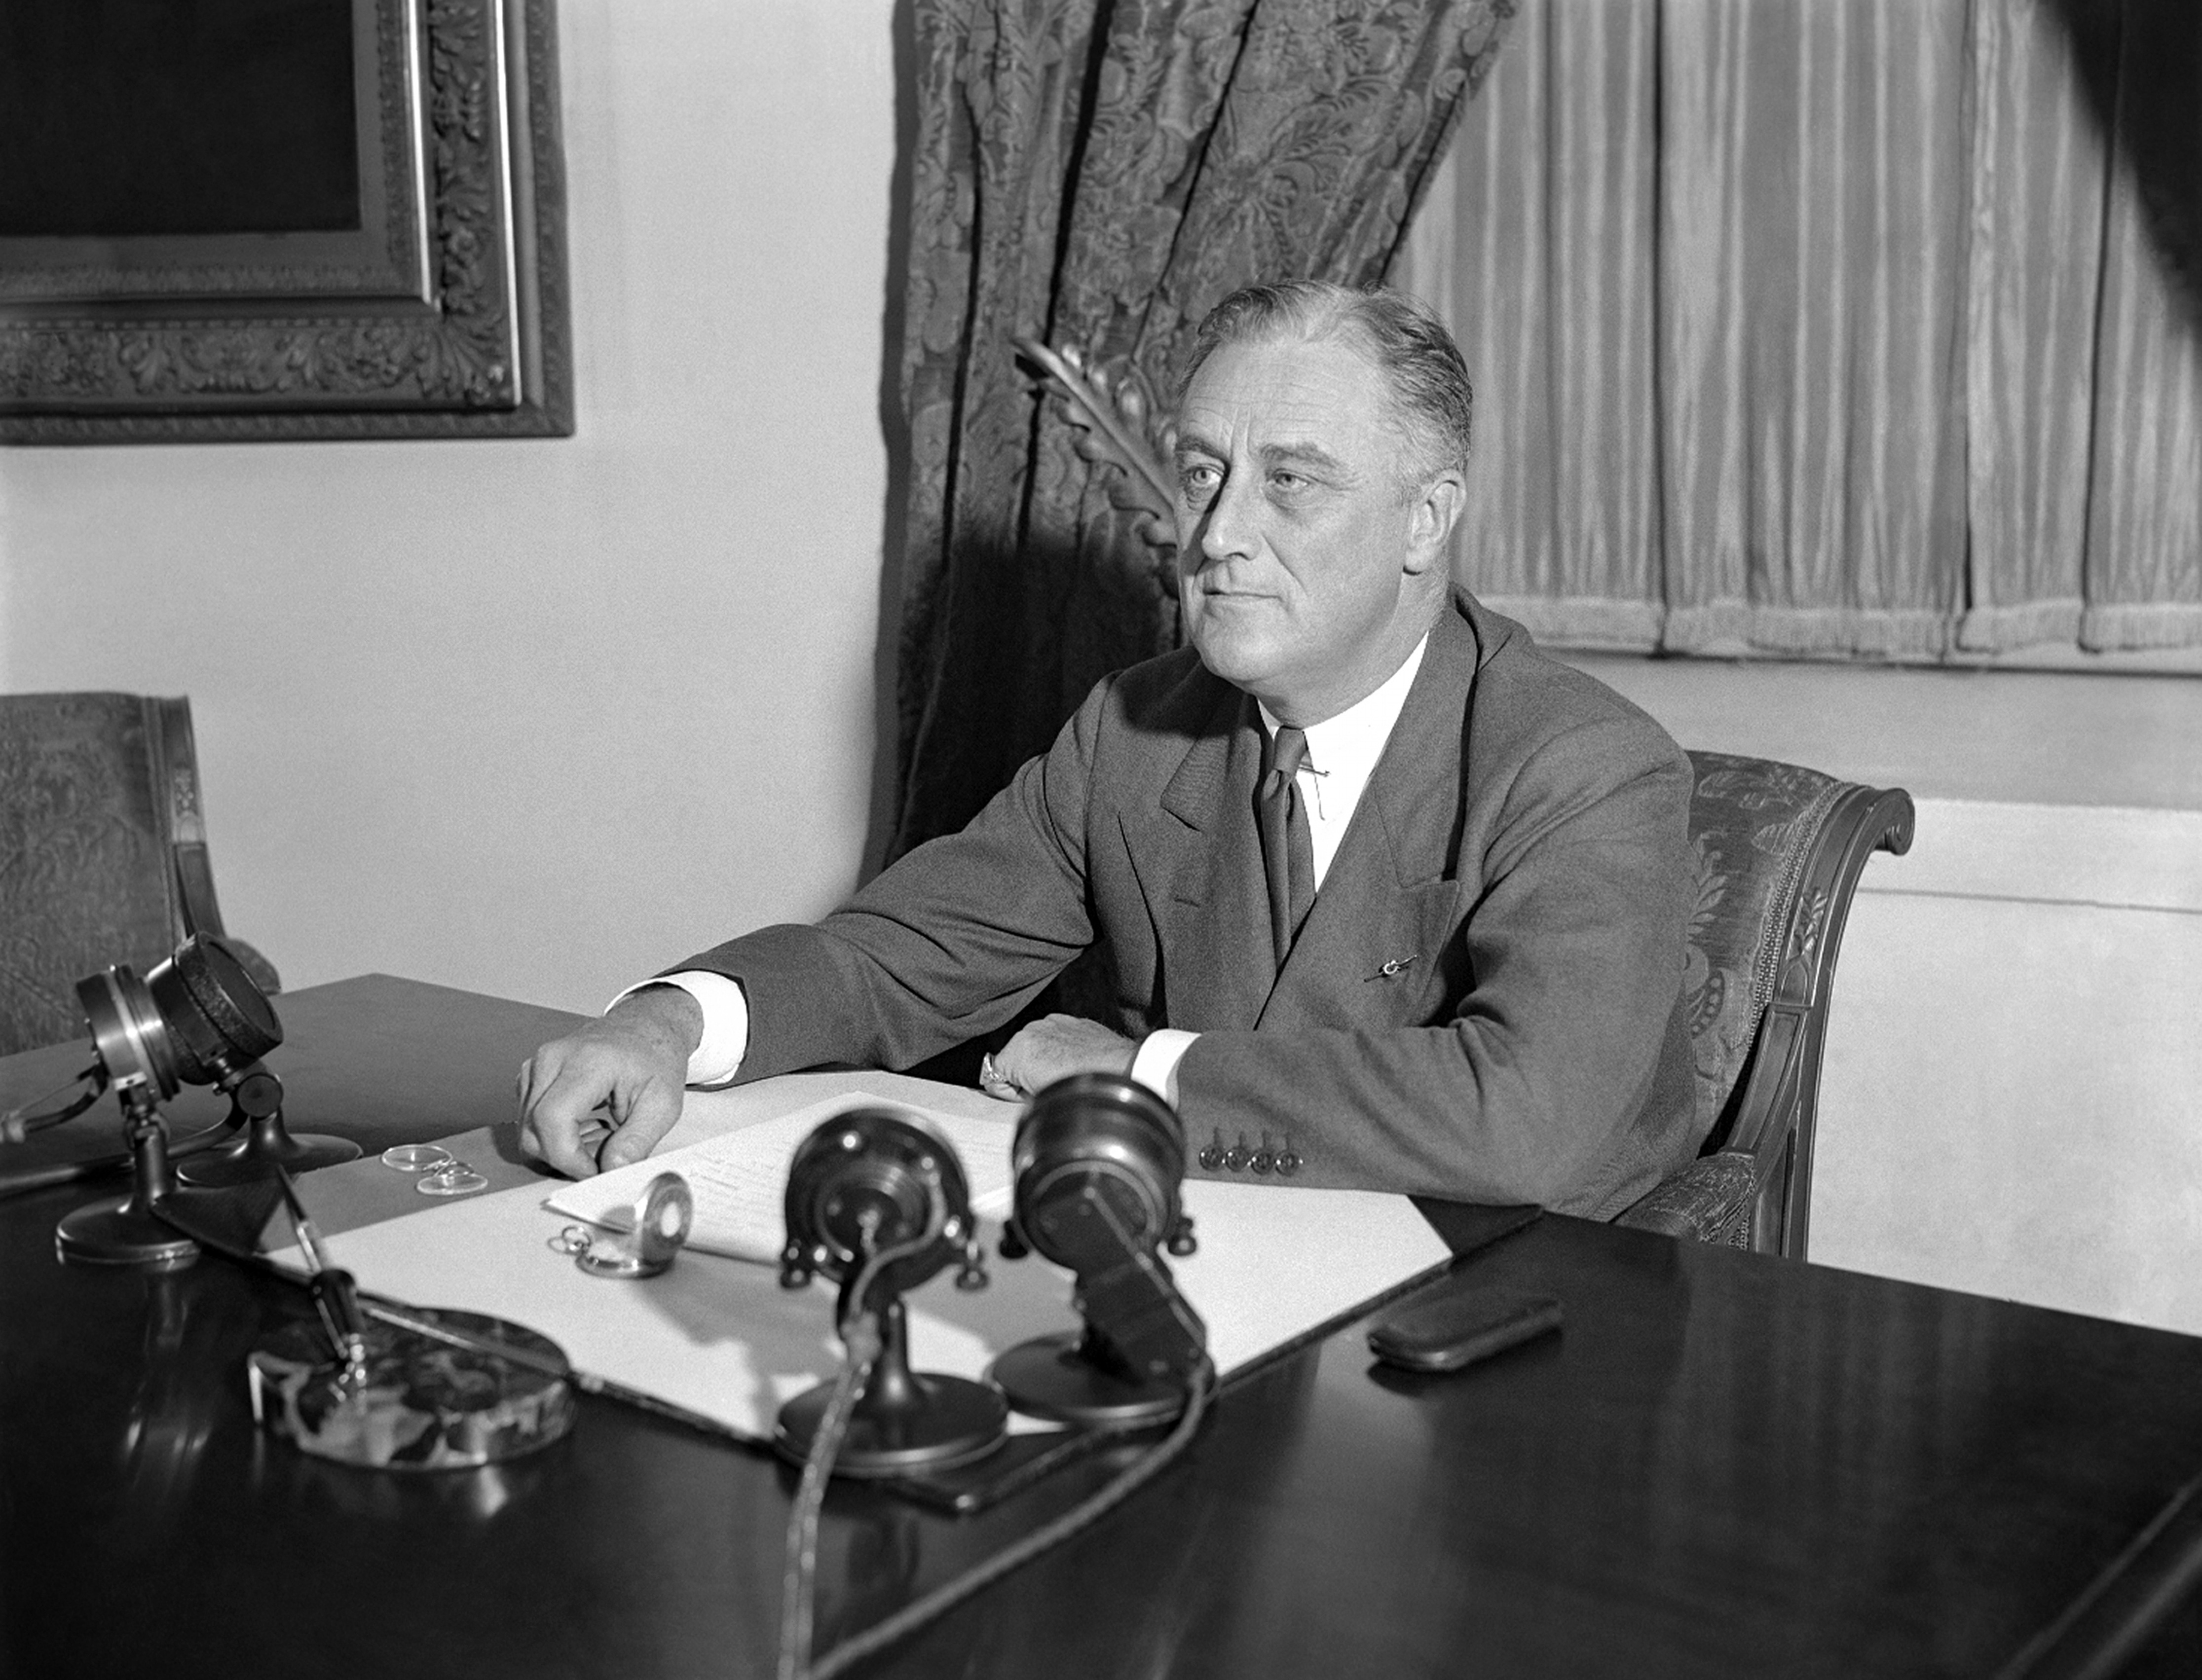 FILE - In this May 7, 1933, file photo, President Franklin D. Roosevelt is shown at his desk at the White House, in Washington, when he outlined his ideas to the nation on a partnership between the government and agriculture, industry, and transportation. He announced measures to be proposed soon to give industrial workers a better deal. A president's first 100 days can be a tire-squealing roar from the starting line, a triumph of style over substance, a taste of what's to come or an ambitious plan of action that gets rudely interrupted by world events. (AP Photo)